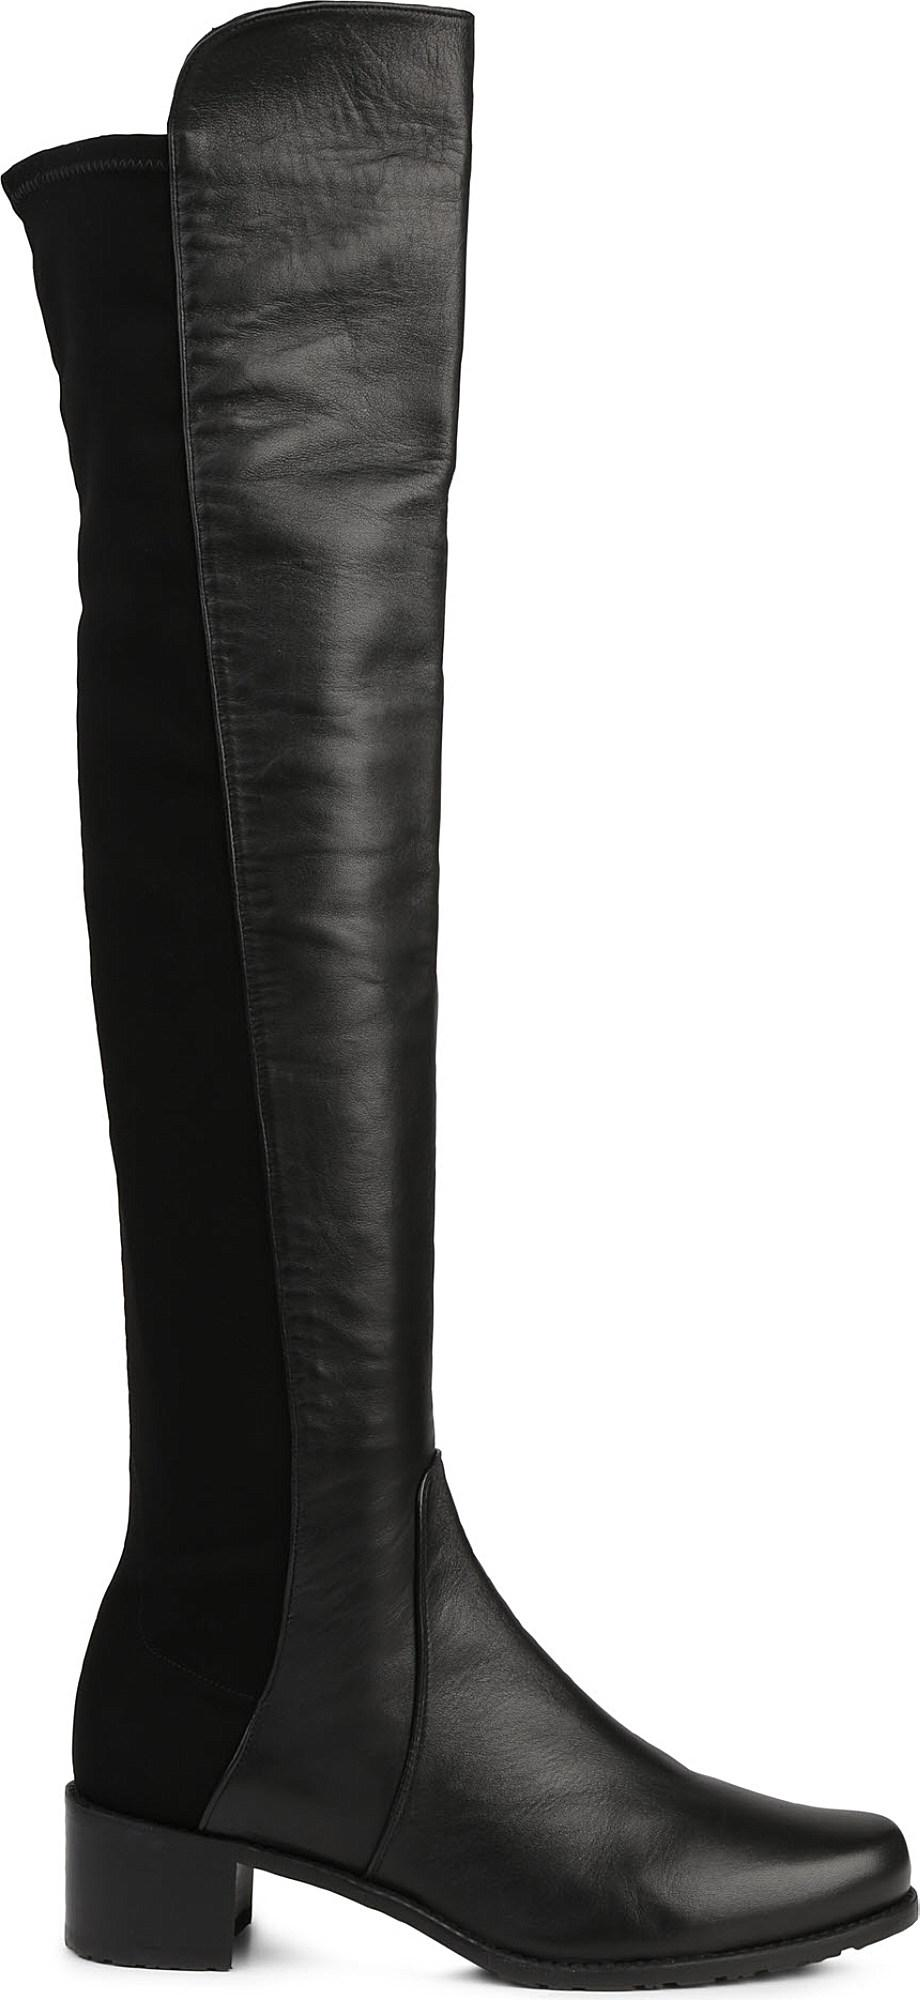 2e7c7962b67 Lyst - Stuart Weitzman The Reserve Boot in Black - Save 62%